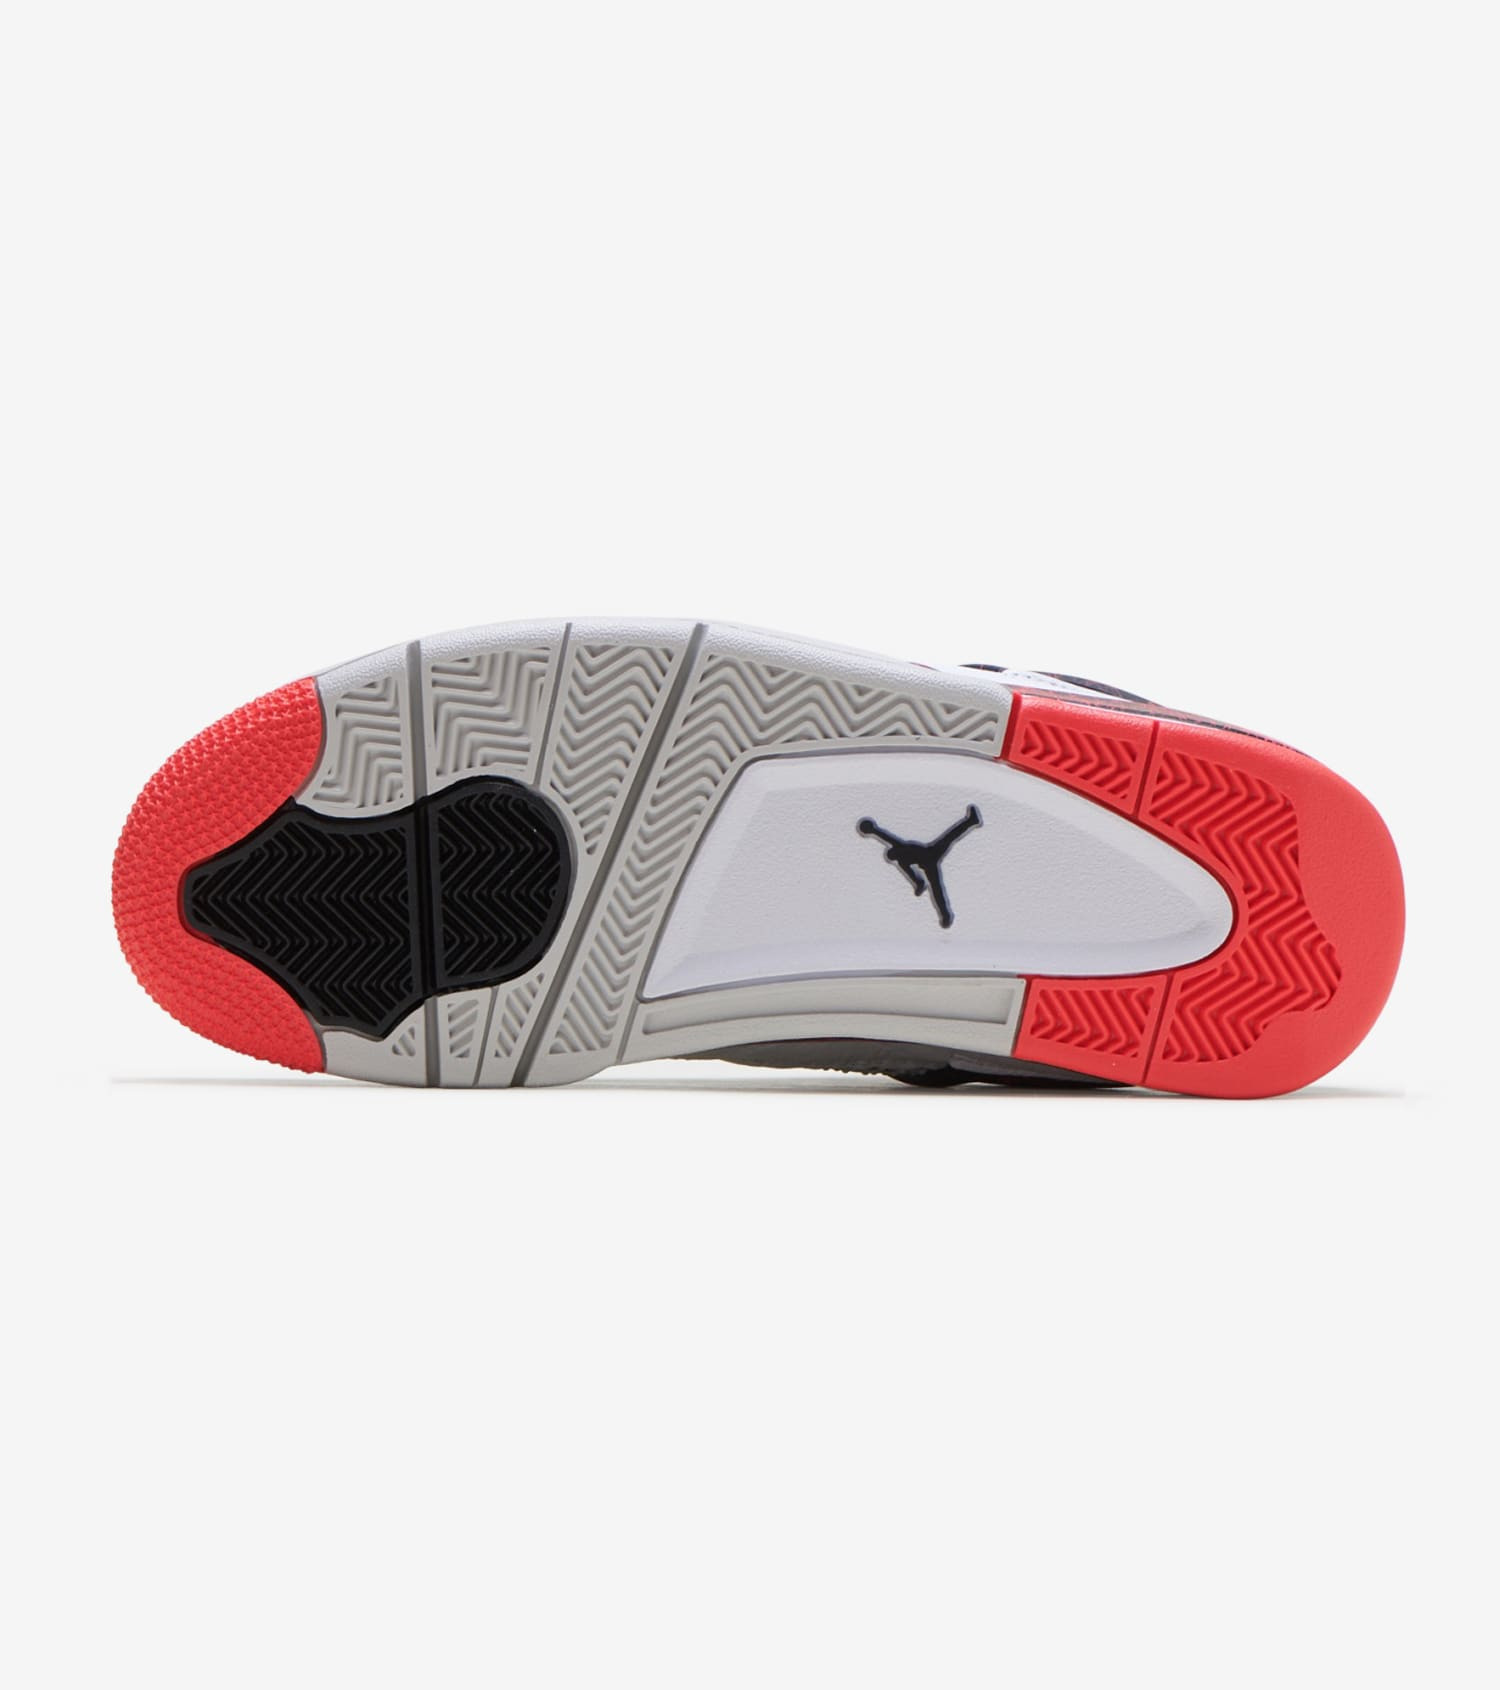 sports shoes 5e6ab 42ff7 Air Jordan Retro 4